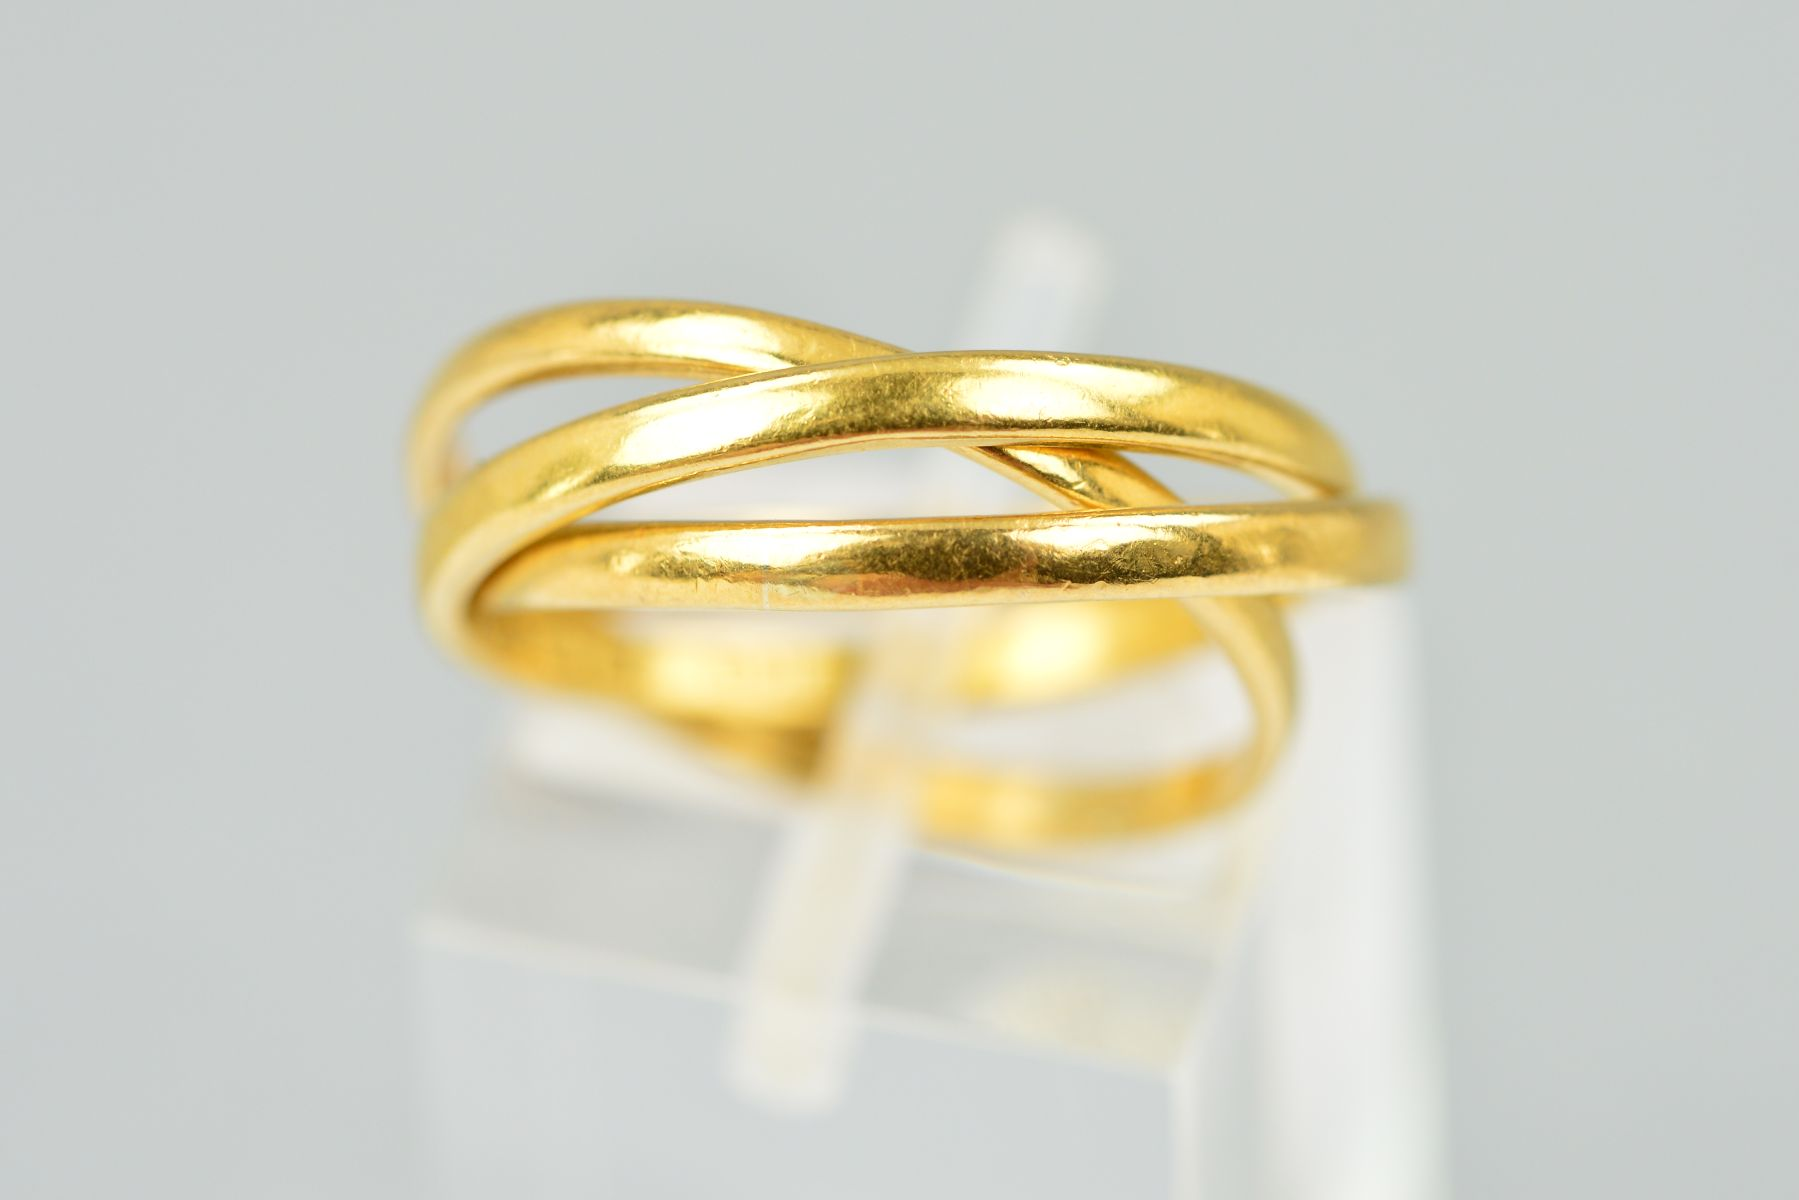 Lot 36 - A 22CT PLAIN GOLD RUSSIAN WEDDING RING, plain polished, each band measuring approximately 2.04mm